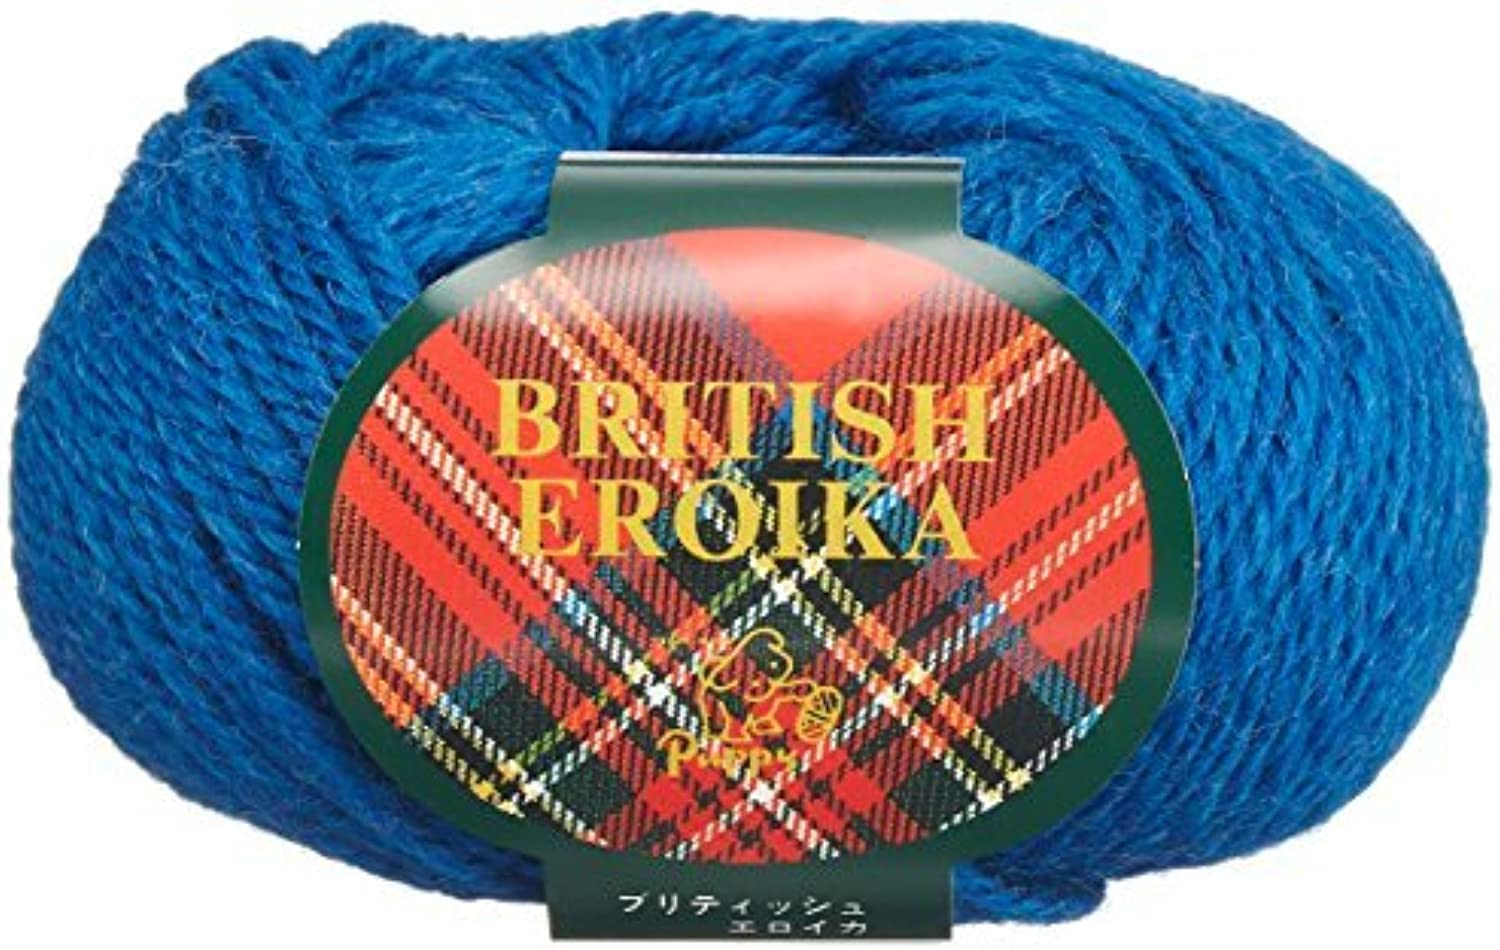 British Eroica yarn BULKY Col.198 bluee series 50 g 83 m 5 ball set